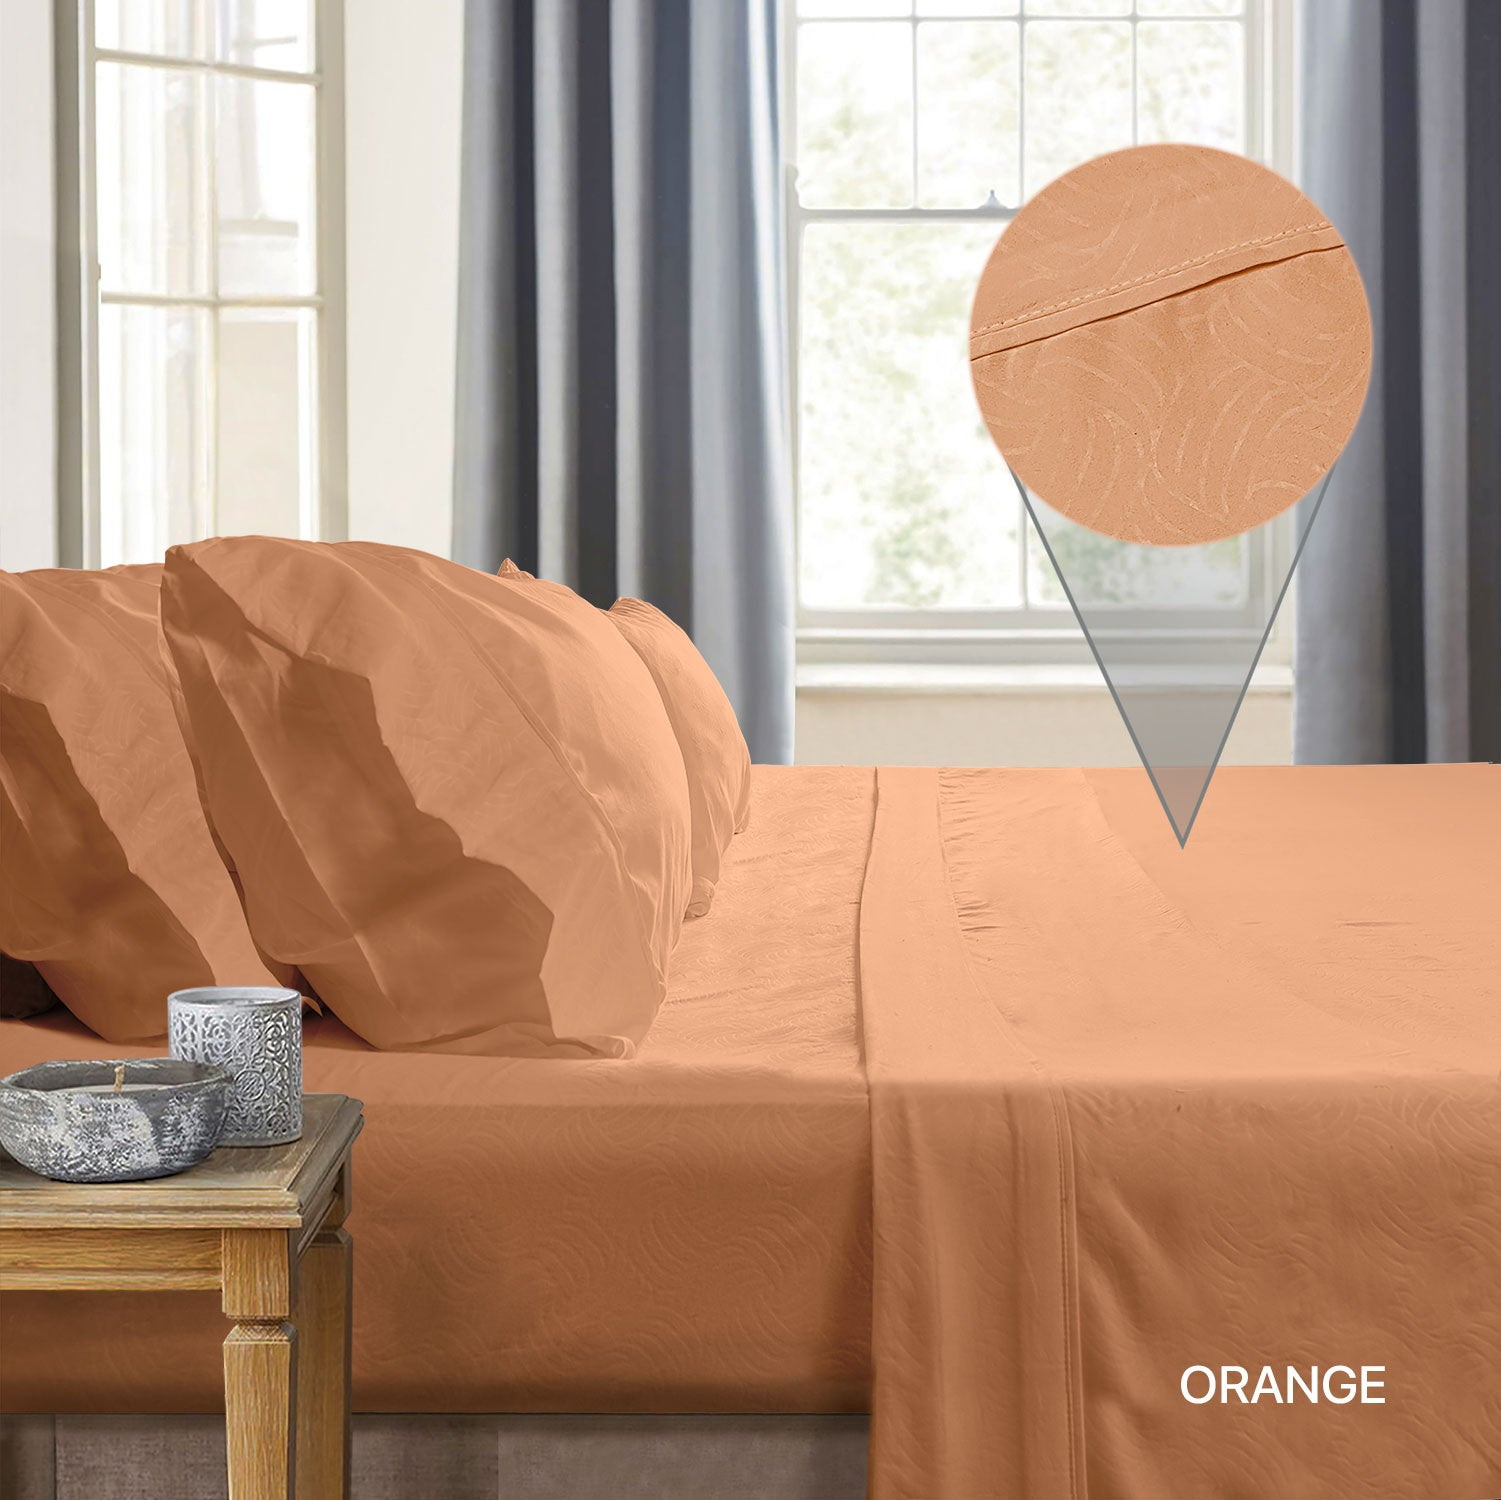 Italian Collezione Bedsheets